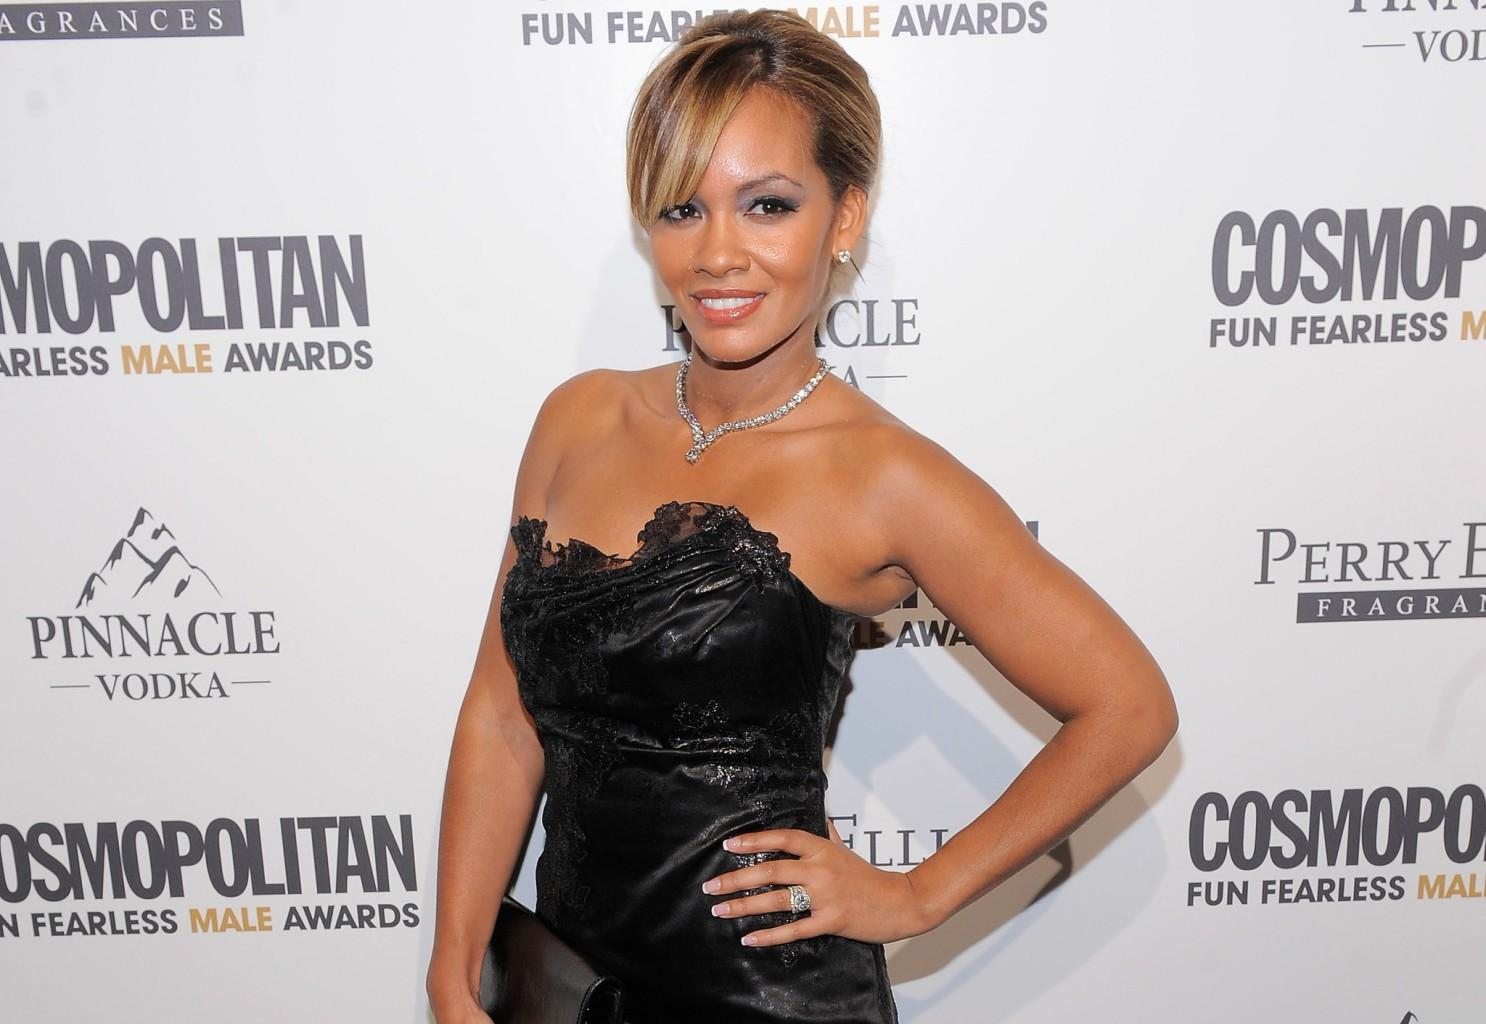 Evelyn Lozada Just Confirmed That She Is Not Coming Back For The Series 'Basketball Wives'